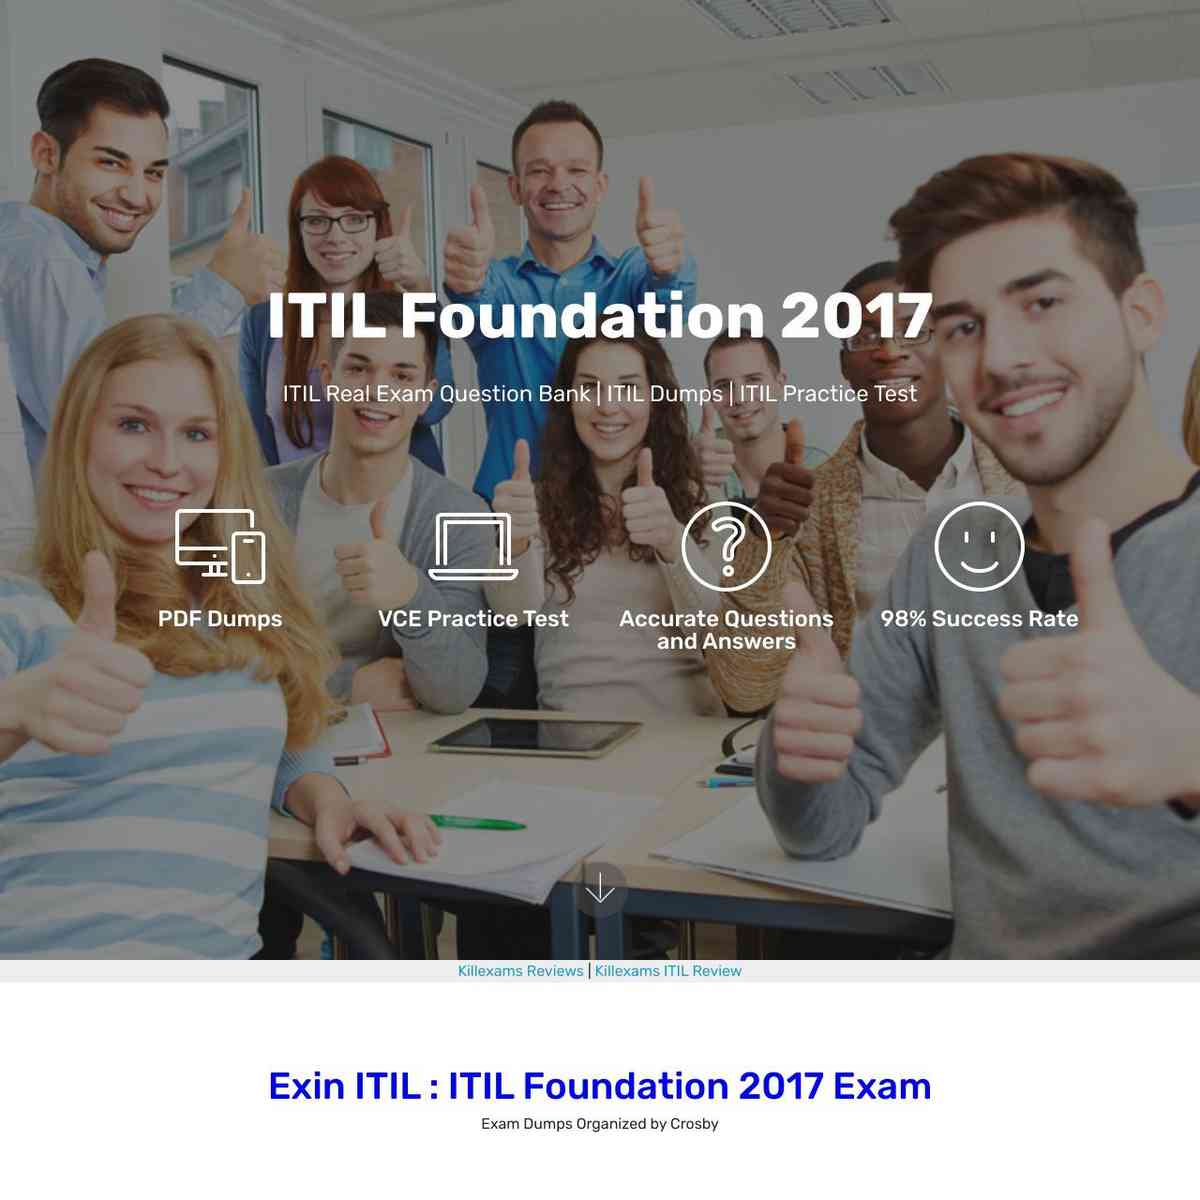 Real ITIL questions that verified up in test today